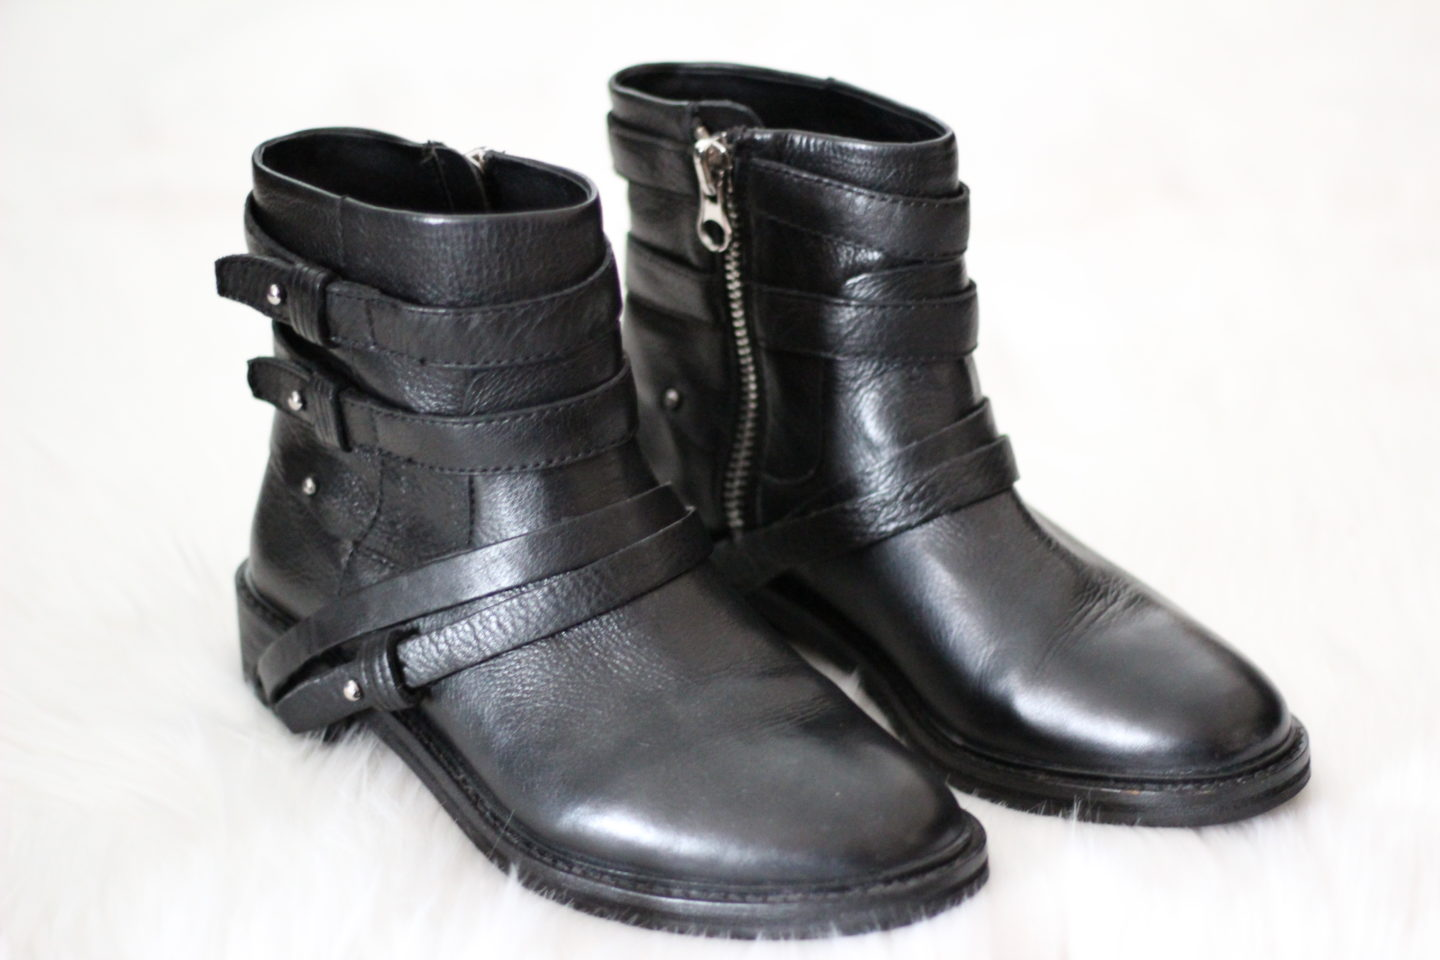 Dolce Vita Boots - Chelsea de Castro - Fall and Winter Booties